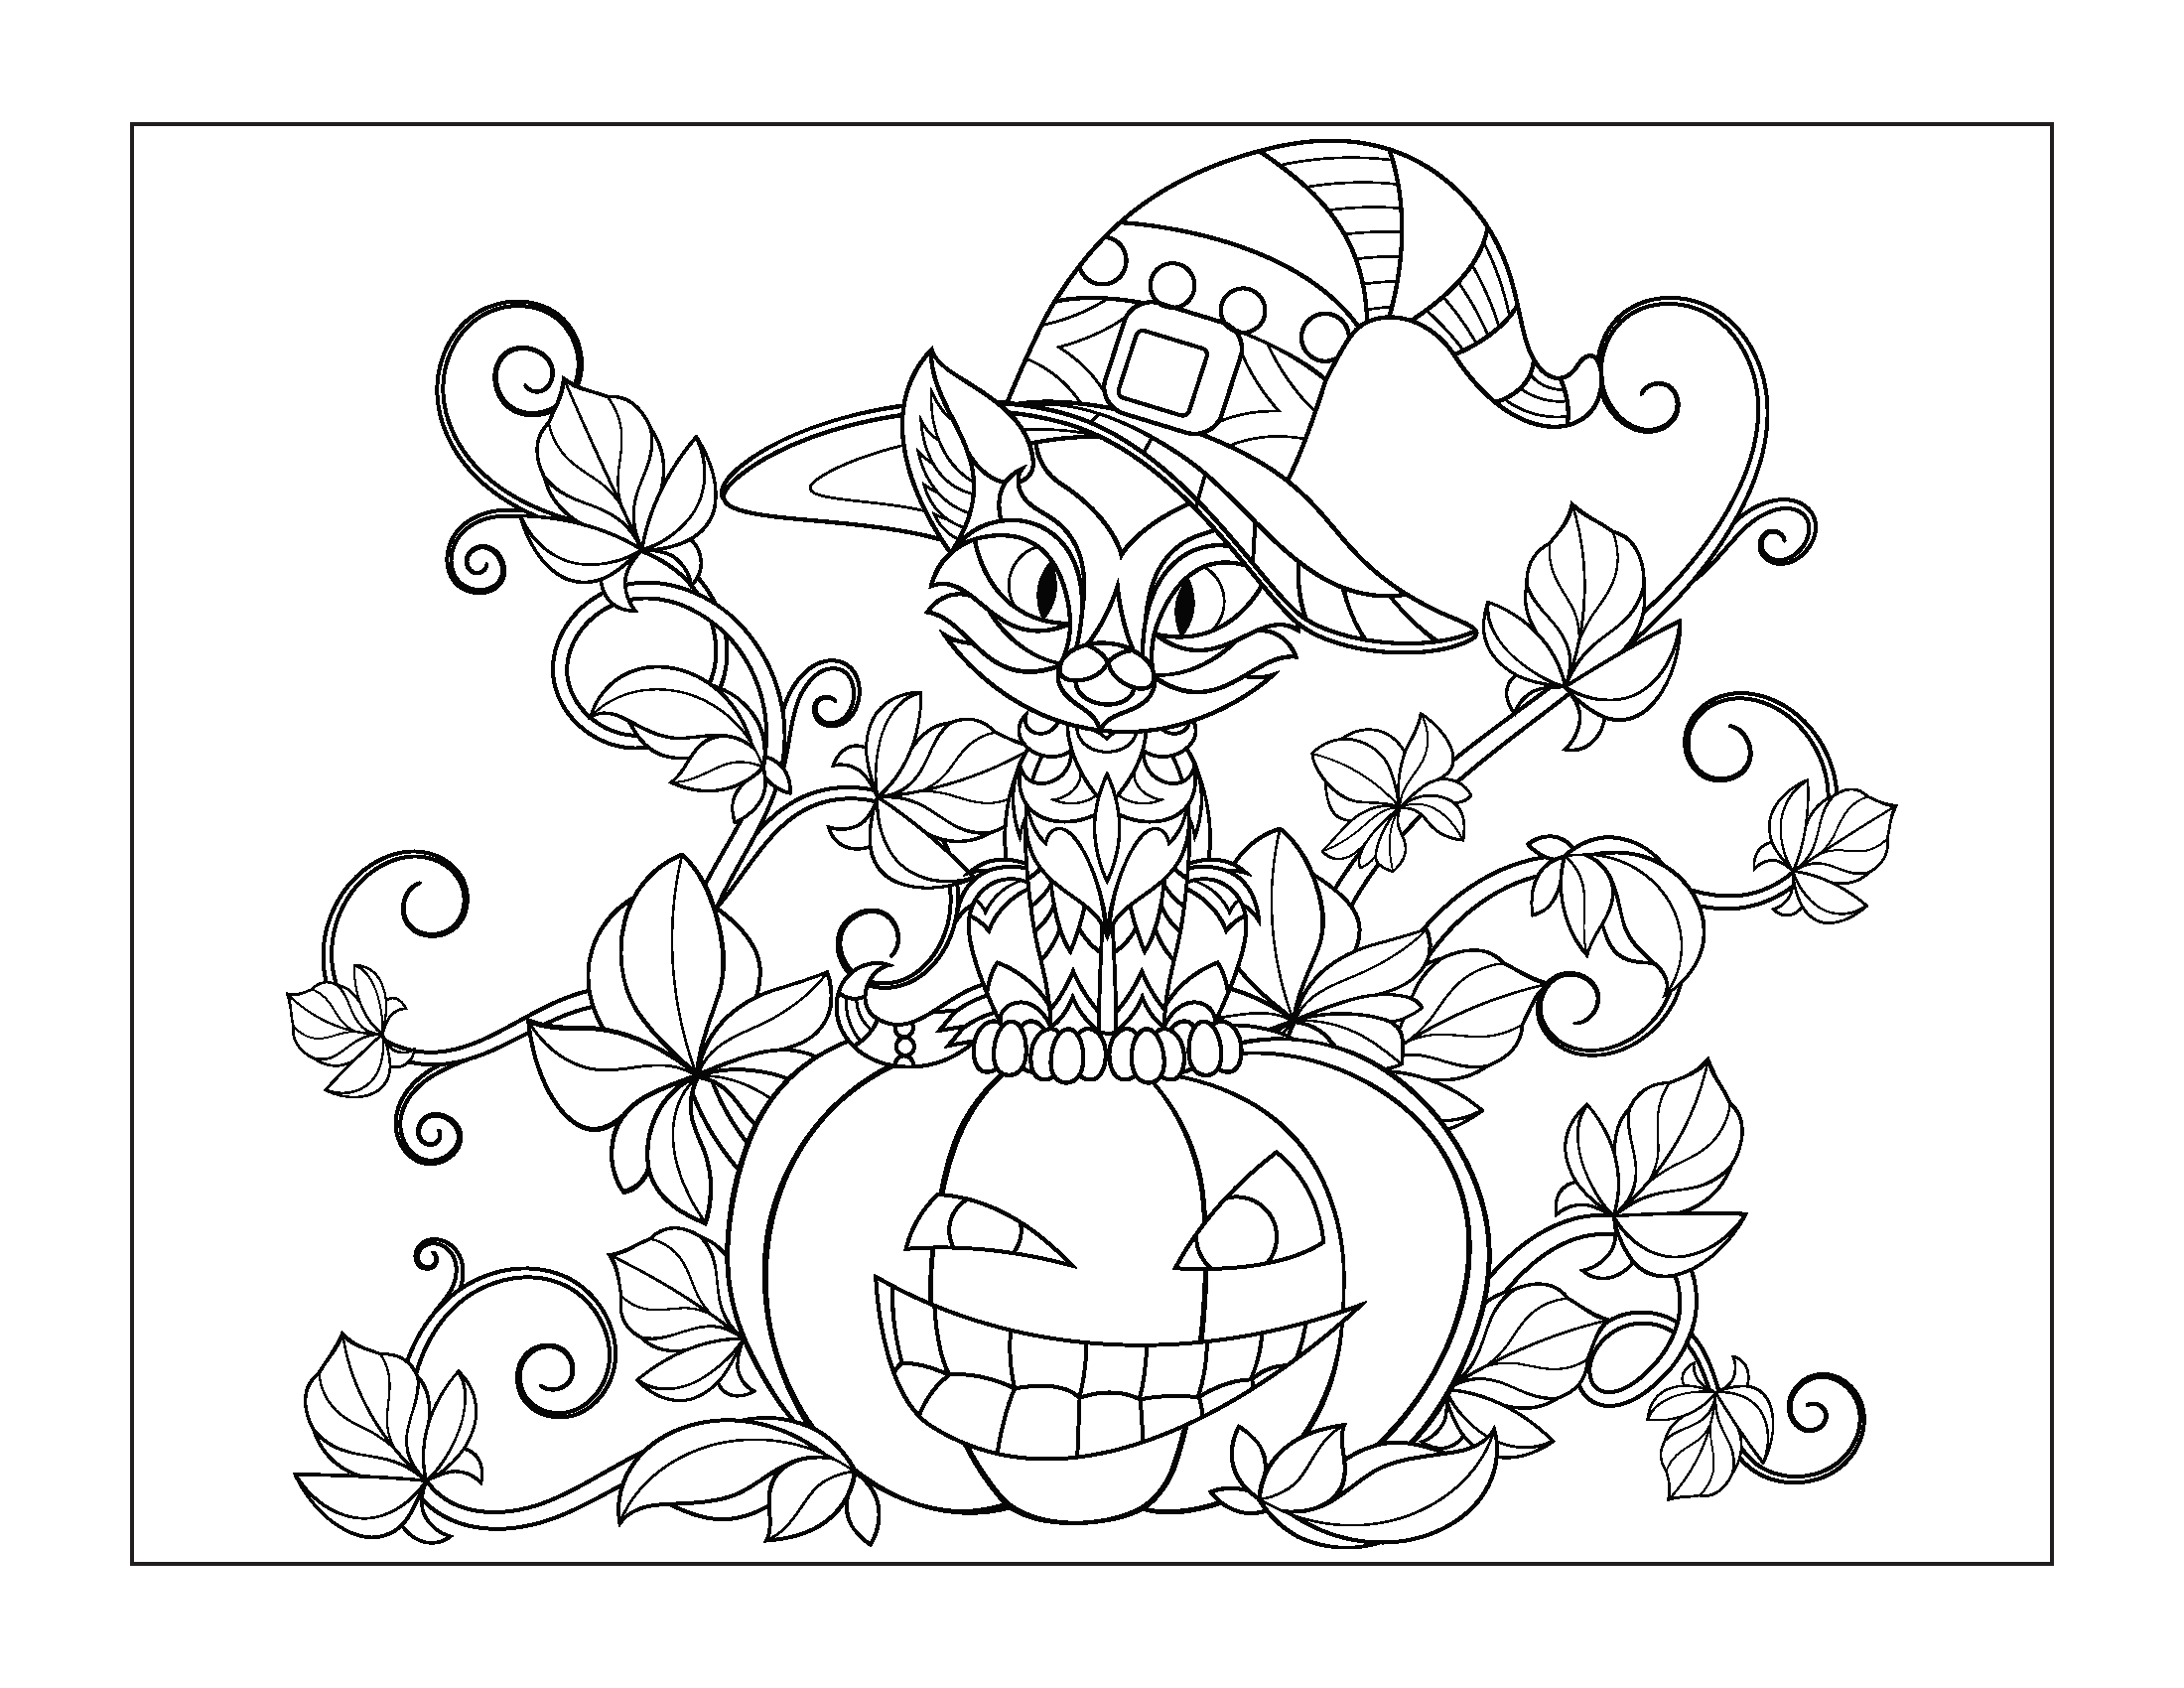 coloring templates halloween halloween coloring pages for kids 100 pictures print coloring templates halloween